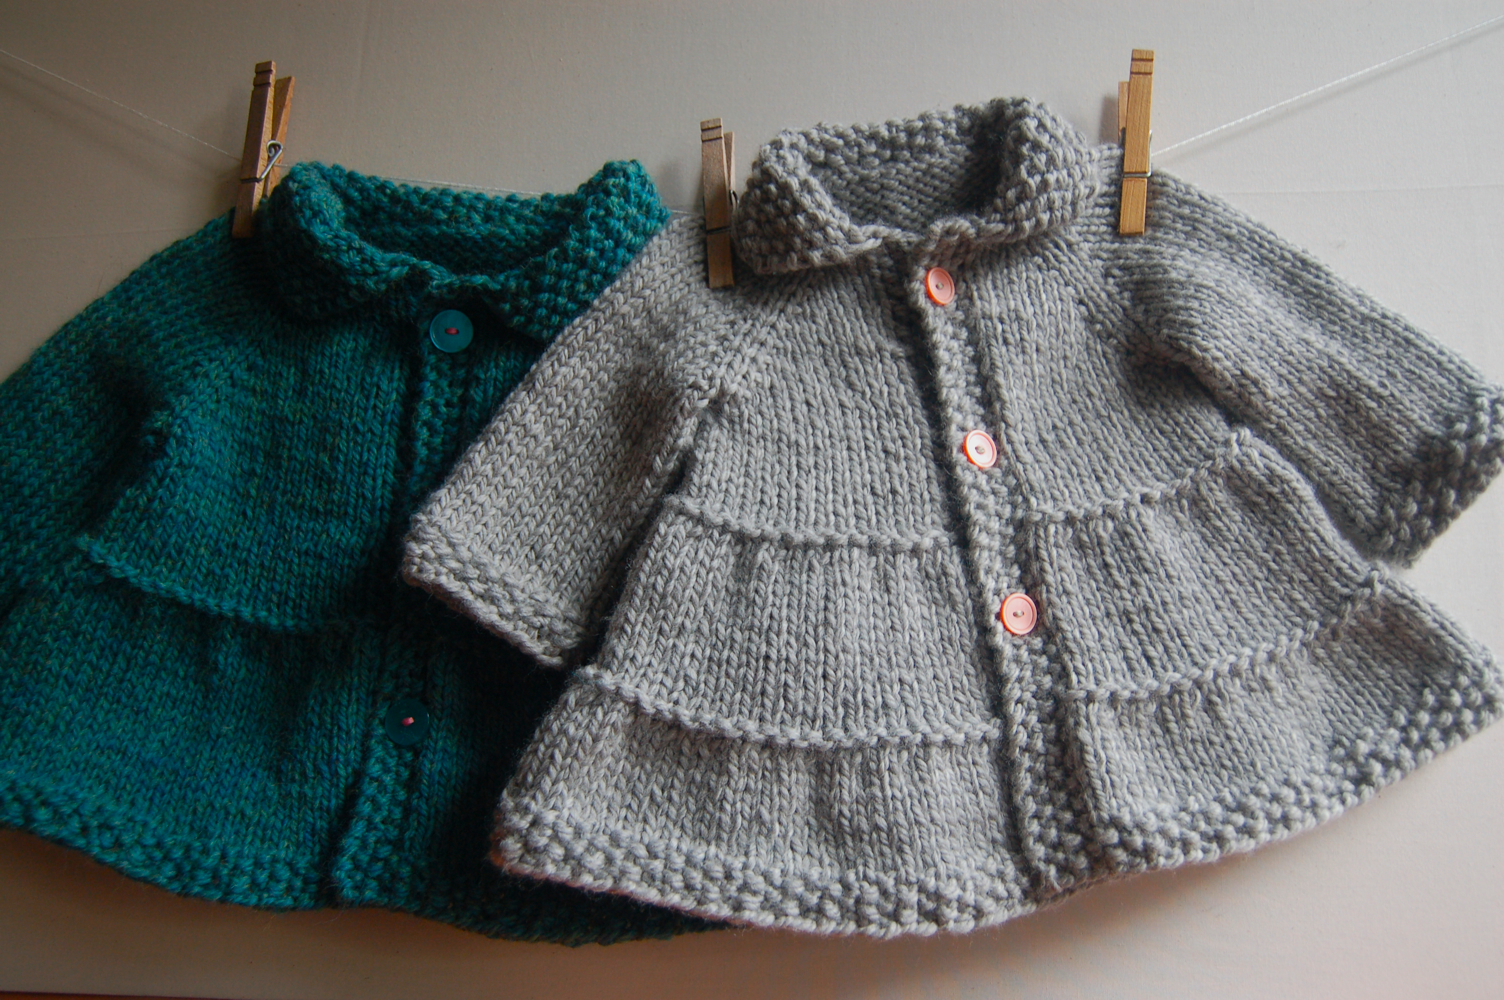 Tiered Baby and child Coat and Jacket - easy knitting pattern